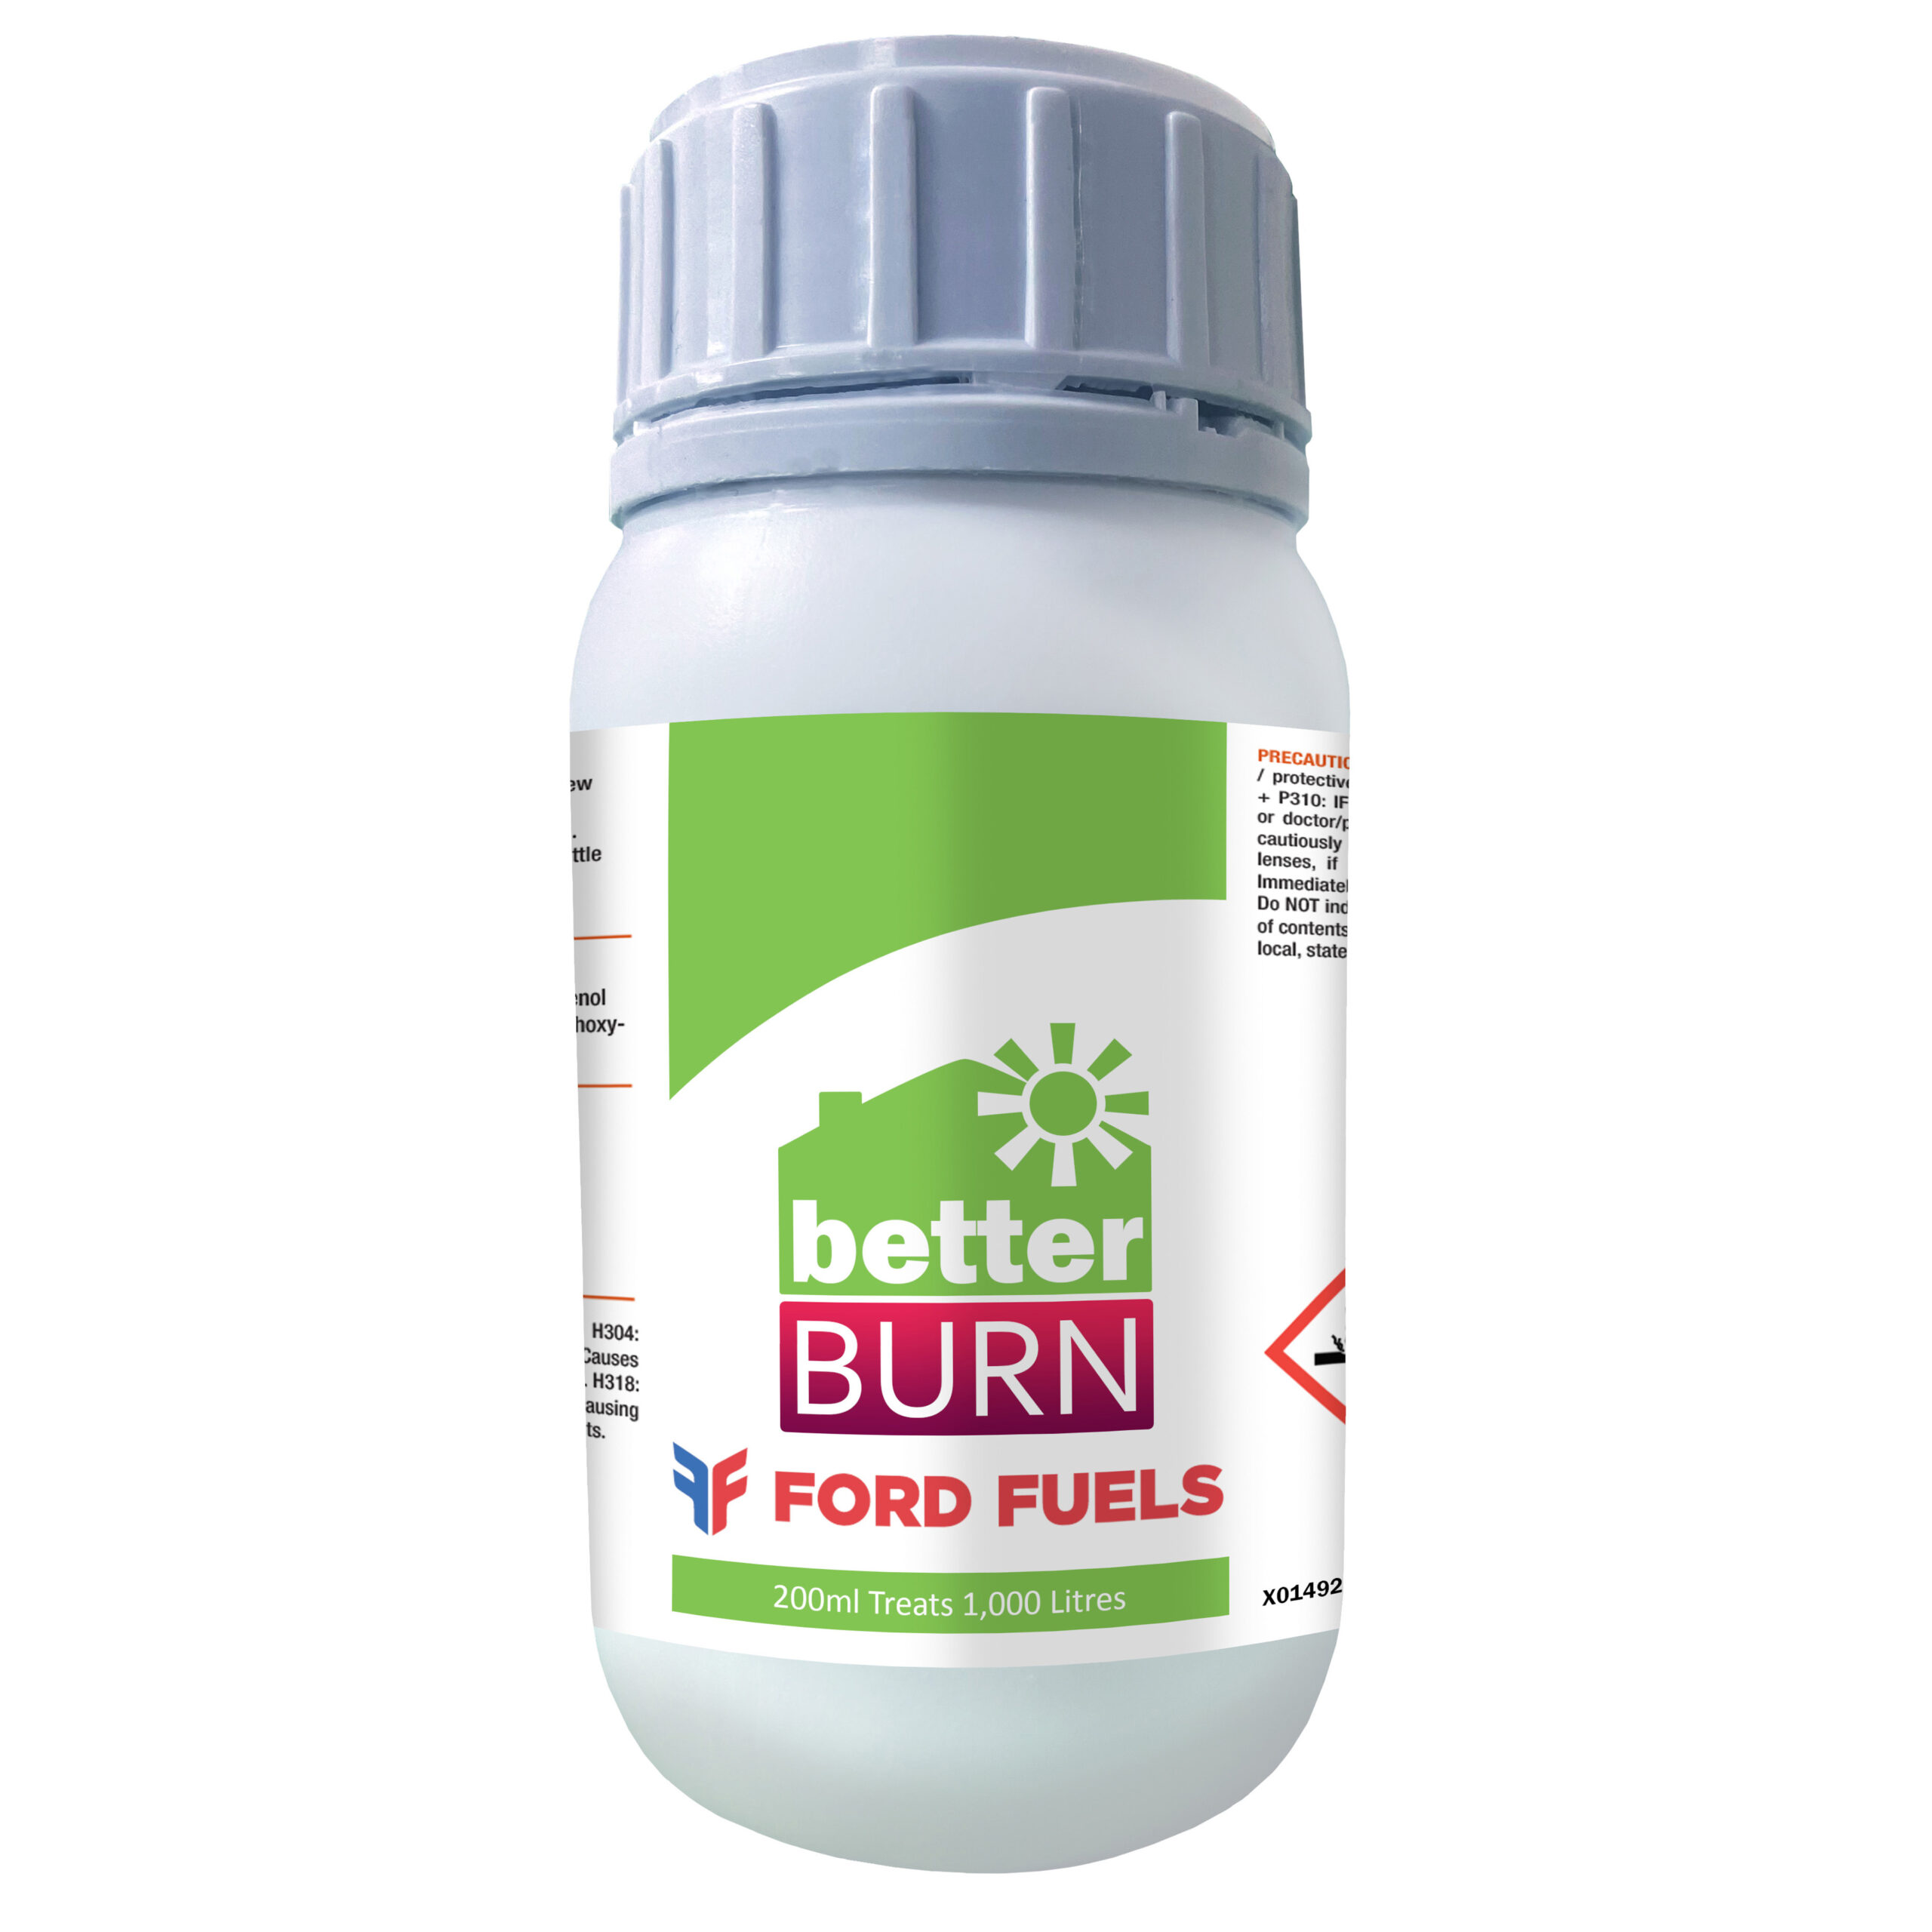 https://commercial.fordfuels.co.uk/wp-content/uploads/sites/10/betterBURN-scaled-350x350.jpg+https://commercial.fordfuels.co.uk/wp-content/uploads/sites/10/betterBURN-scaled-700x700.jpg